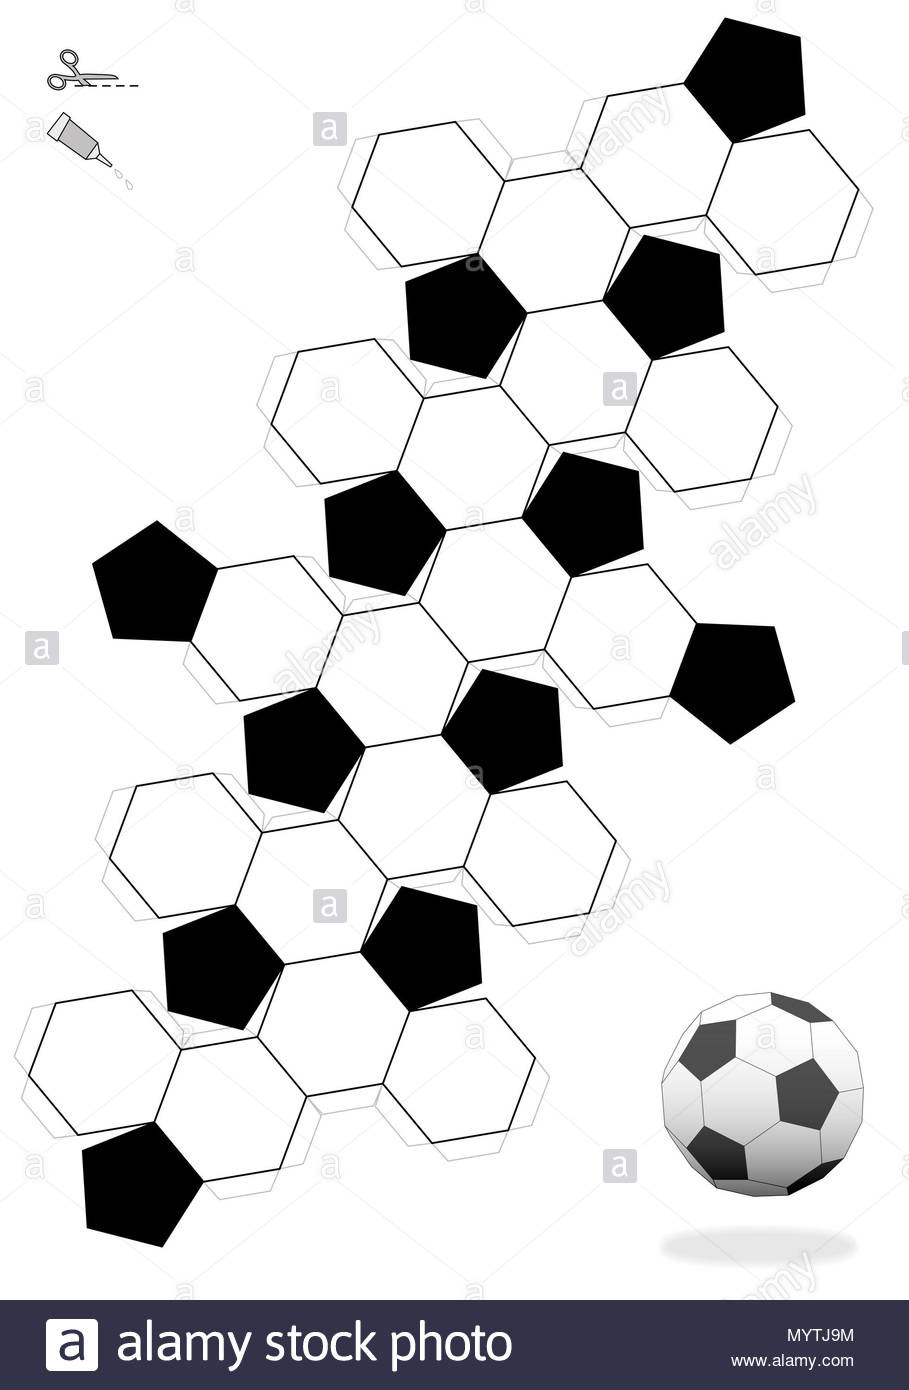 Truncated Icosahedron Soccer ball template for making a 3d